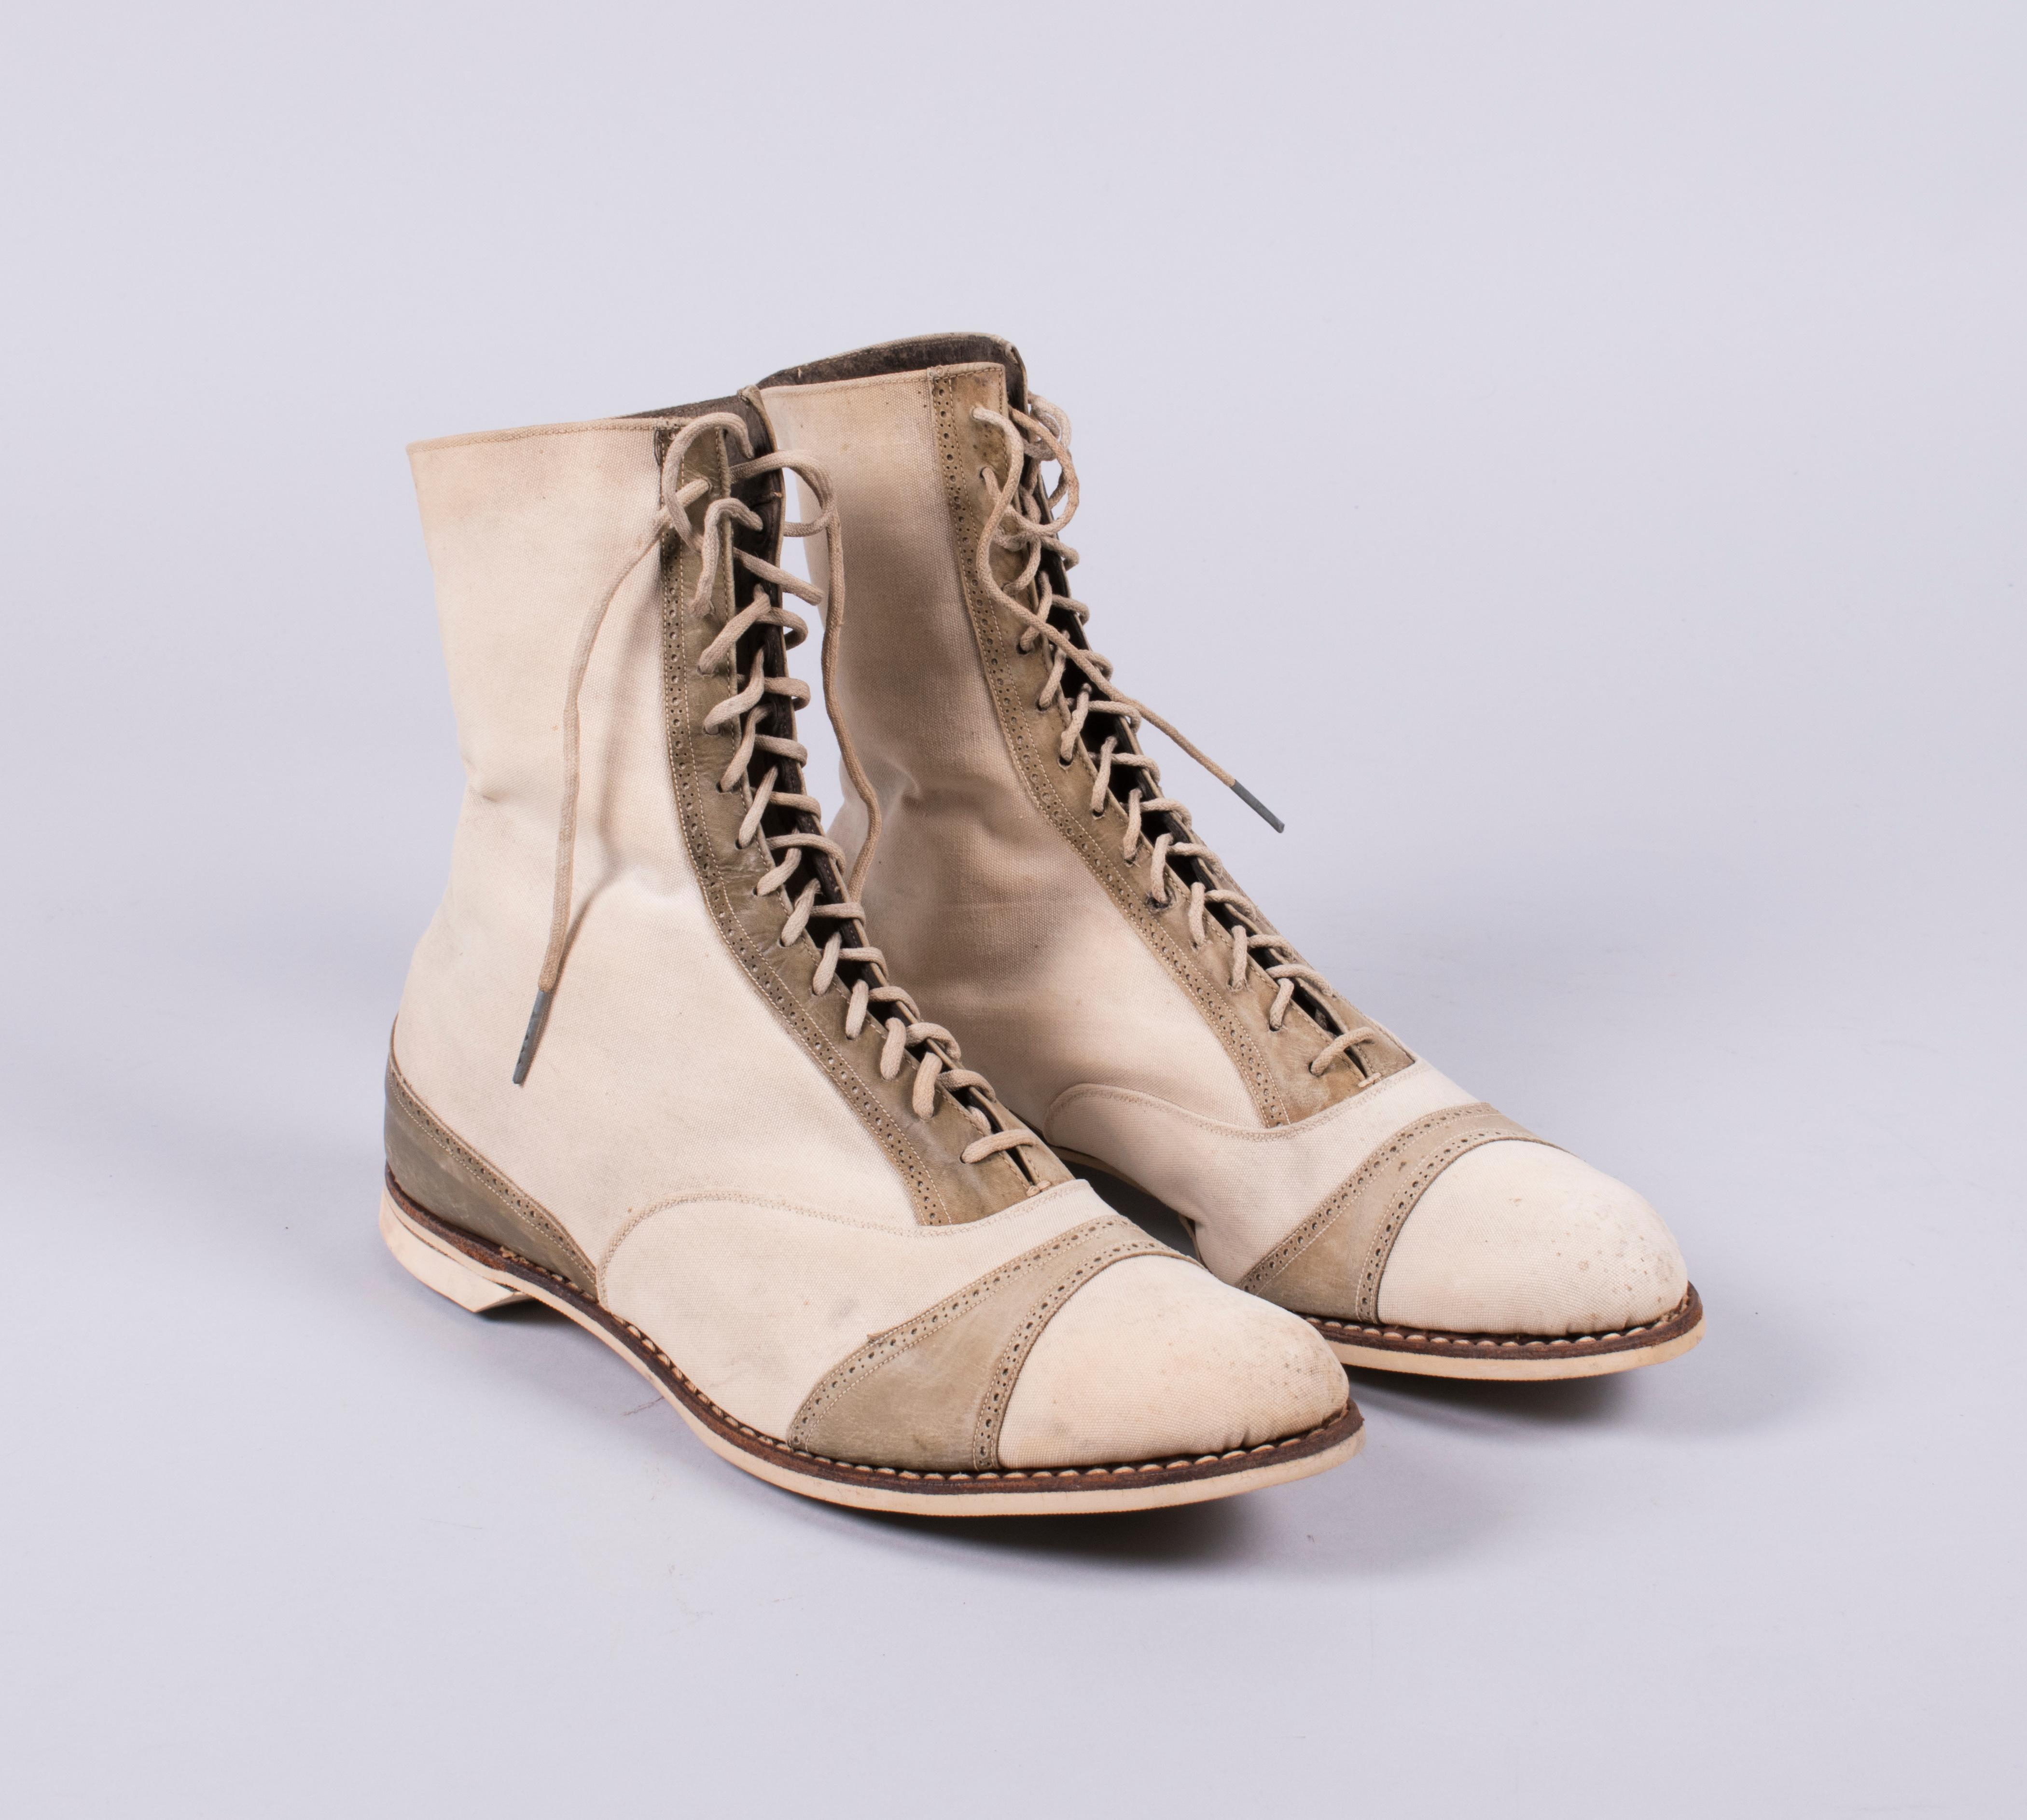 Canas sport boot 1910s. Loan courtesy of Nordstrom Archives.{ }